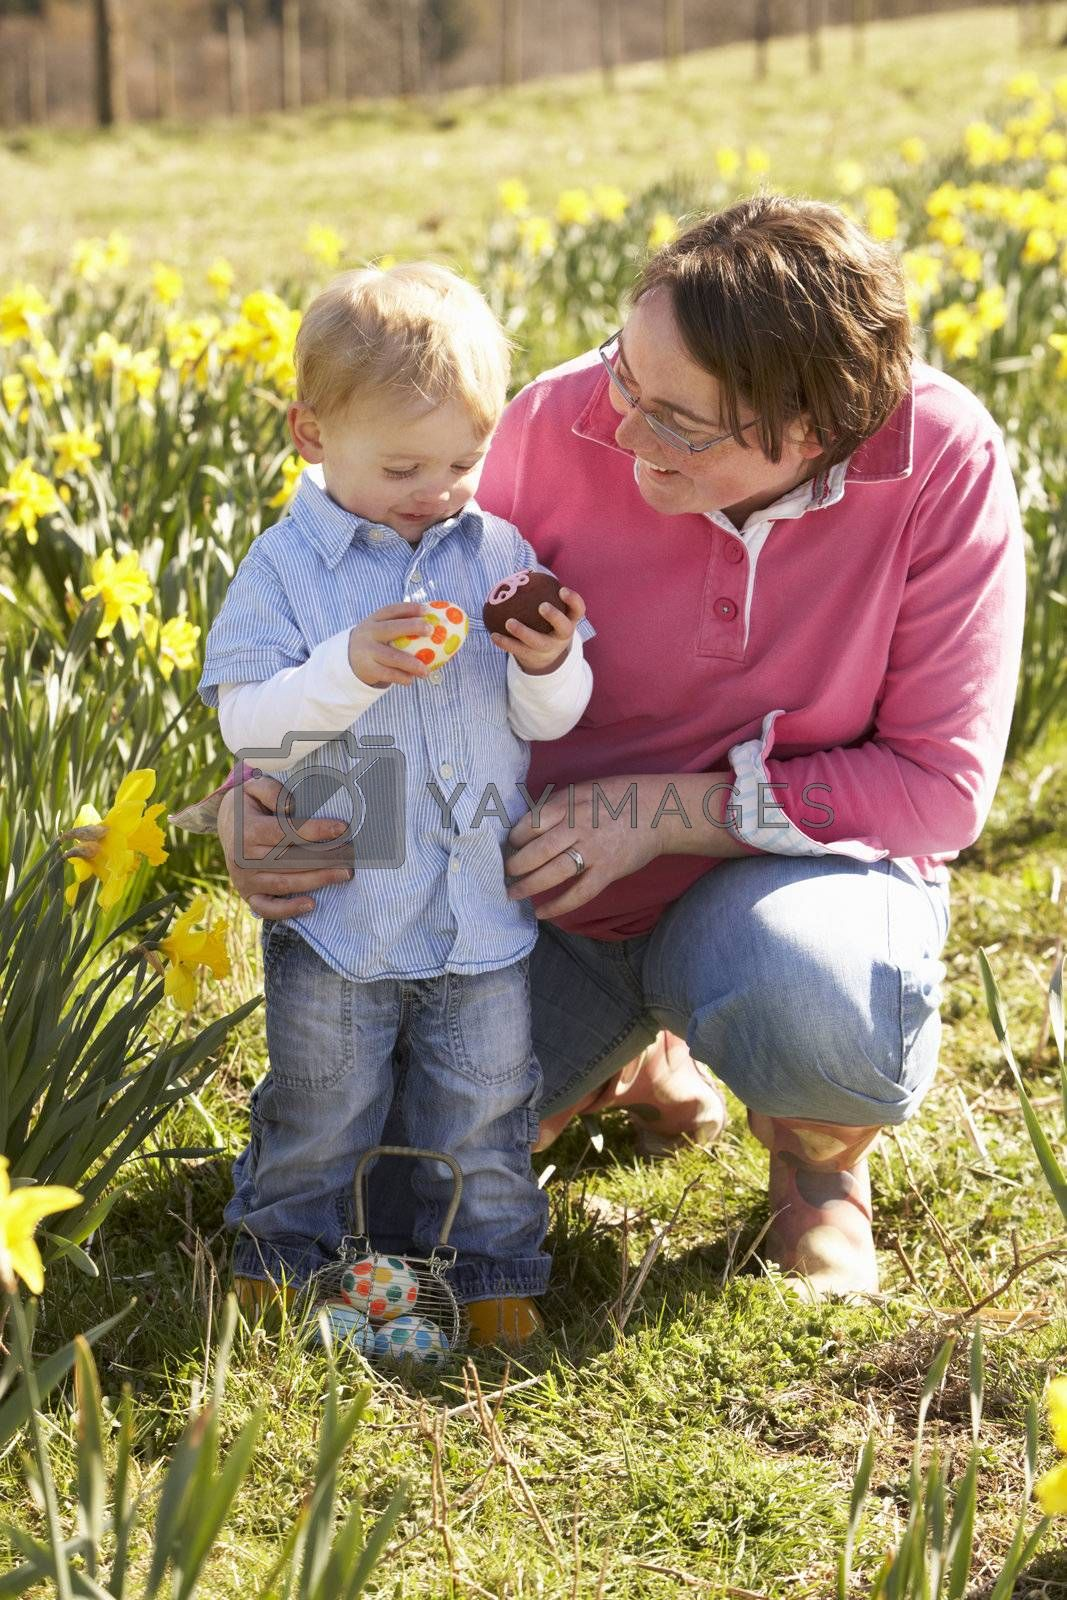 Mother And Son On Easter Egg Hunt In Daffodil Field by OMG Images